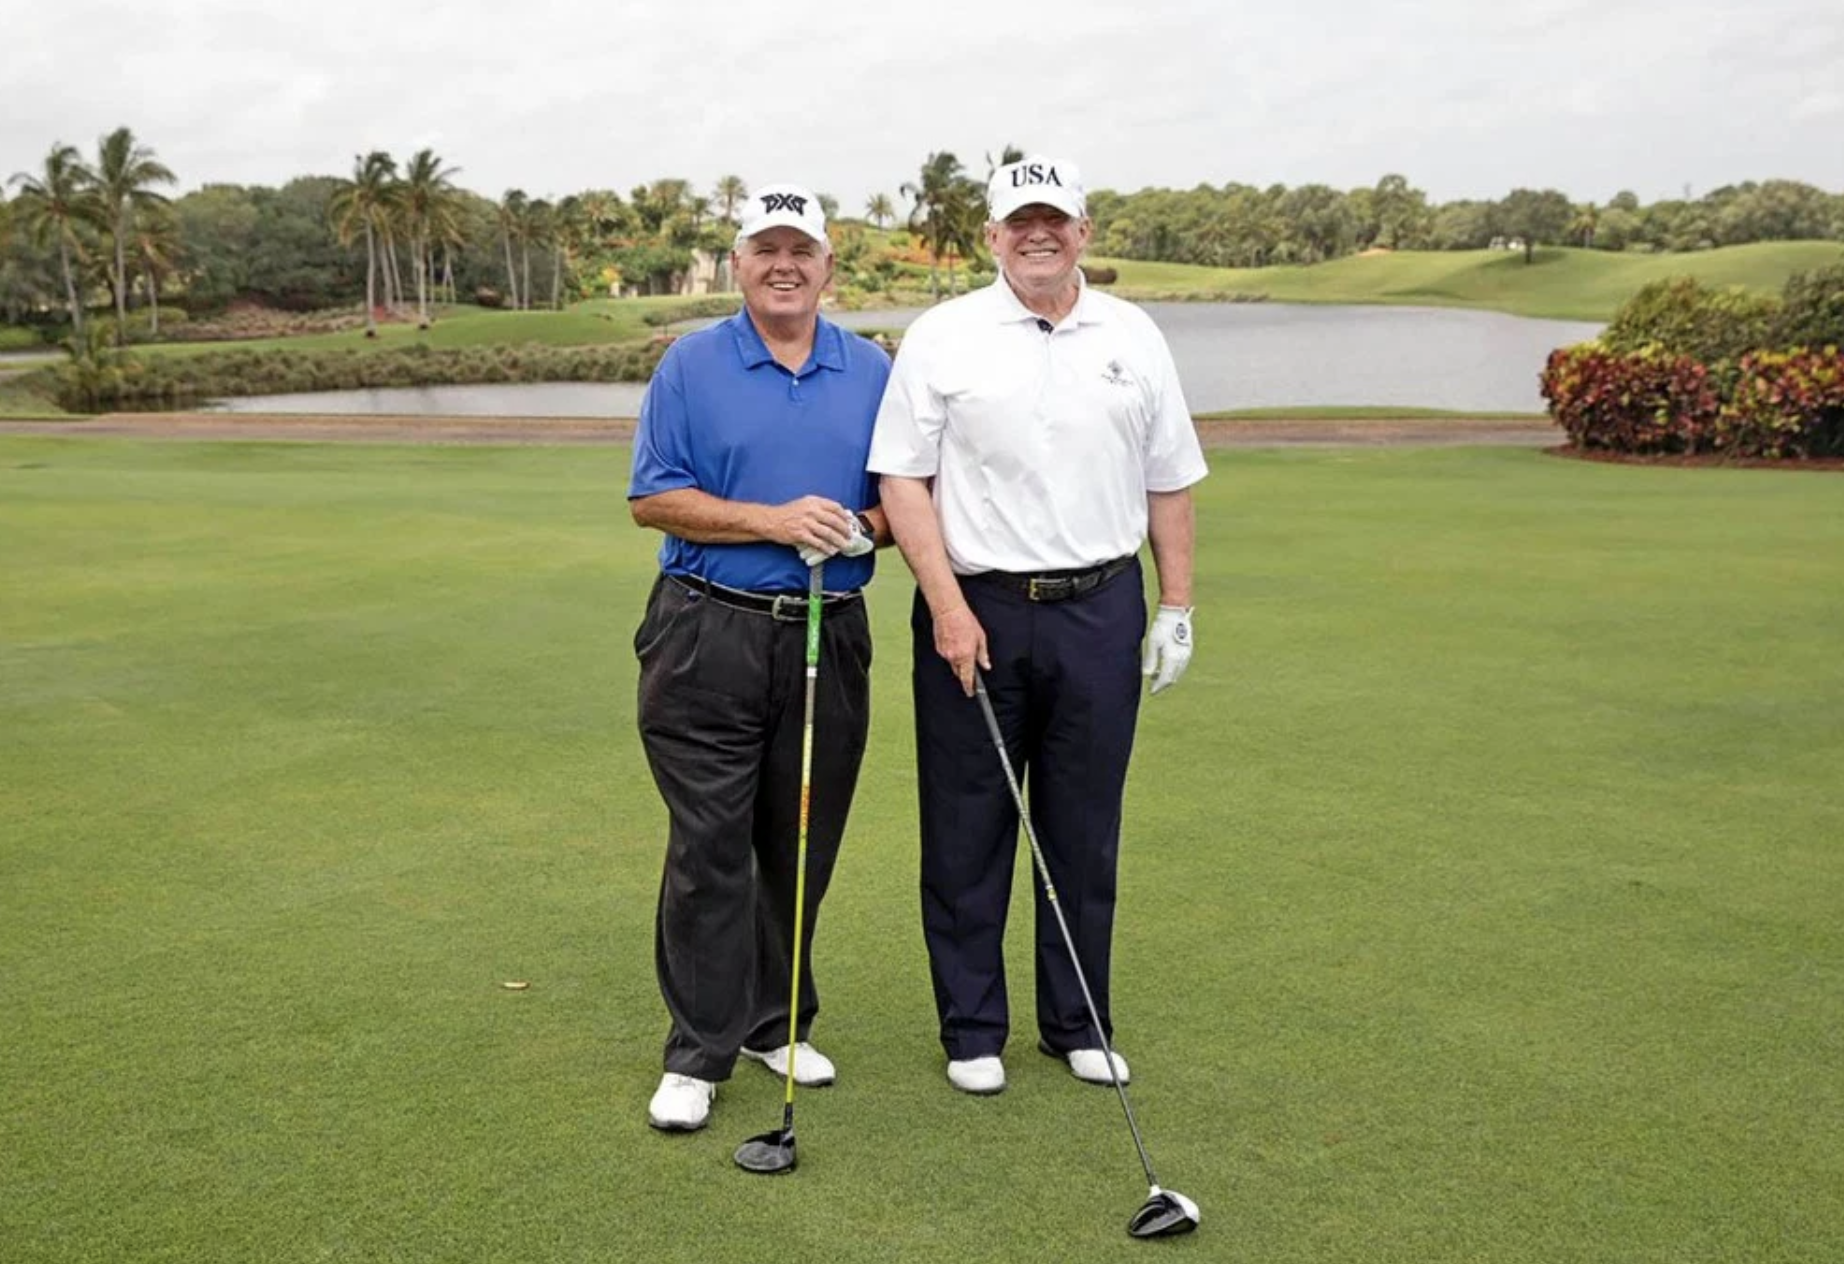 Rush Limbaugh and President Donald Trump play golf on April 19, 2019.